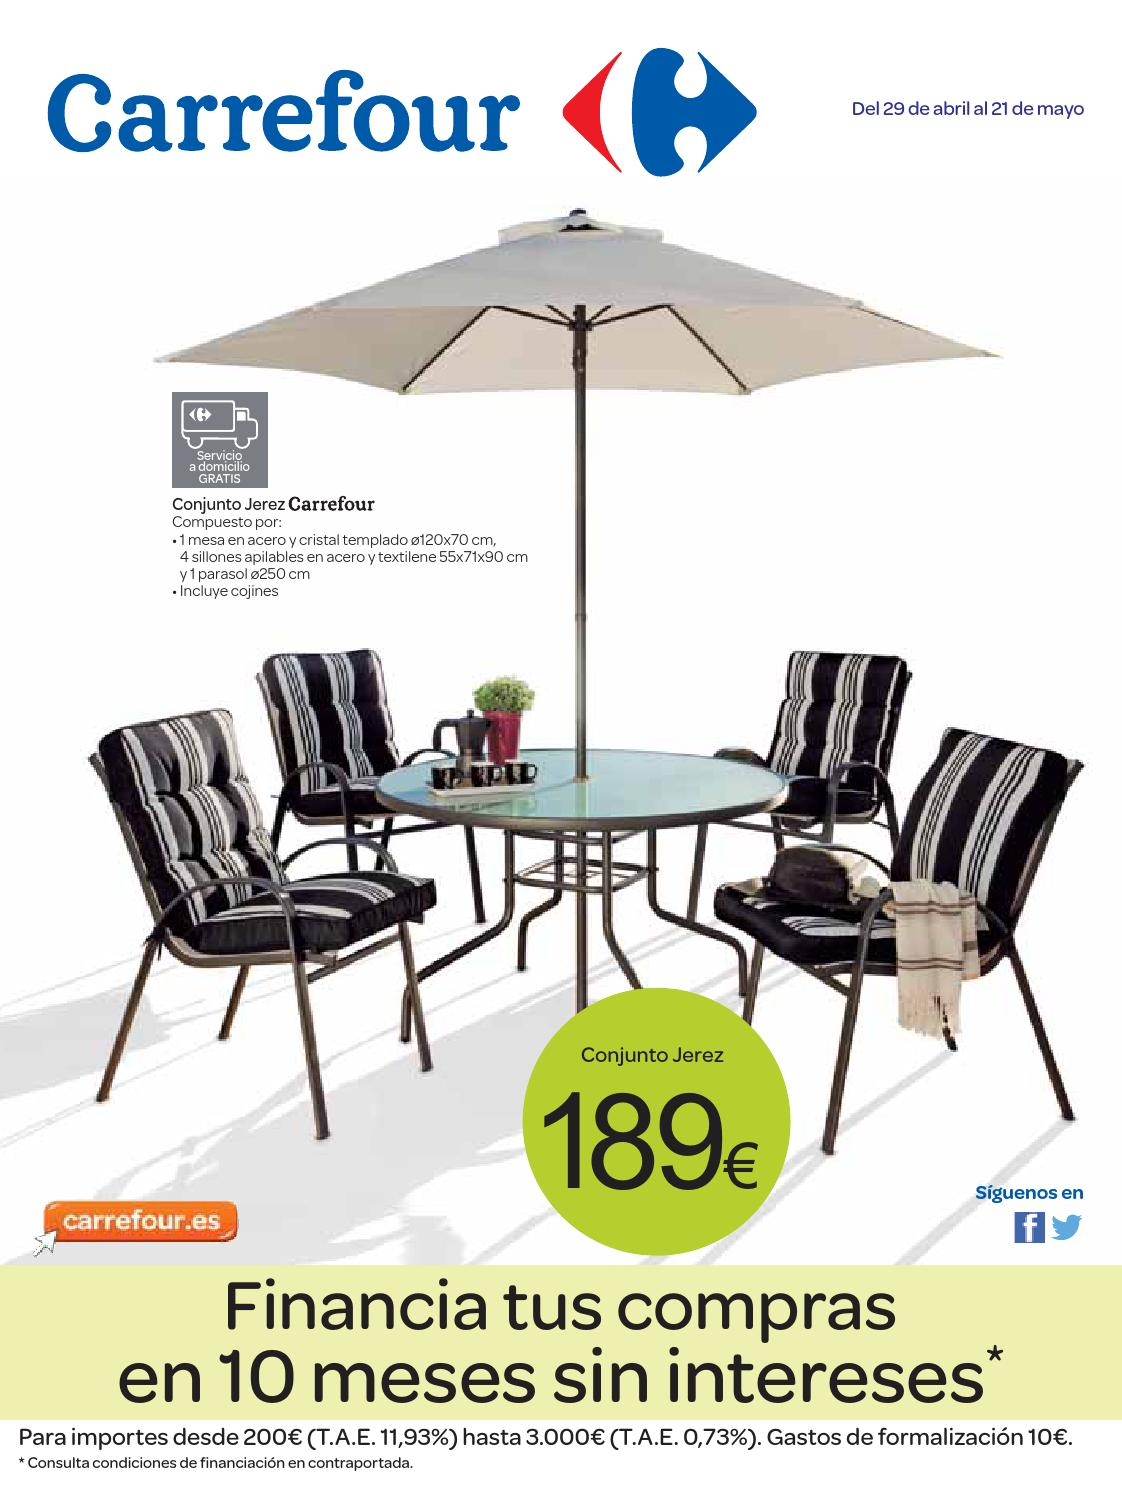 Catalogo carrefour online 2014 by carrefour online issuu for Carrefour online muebles jardin